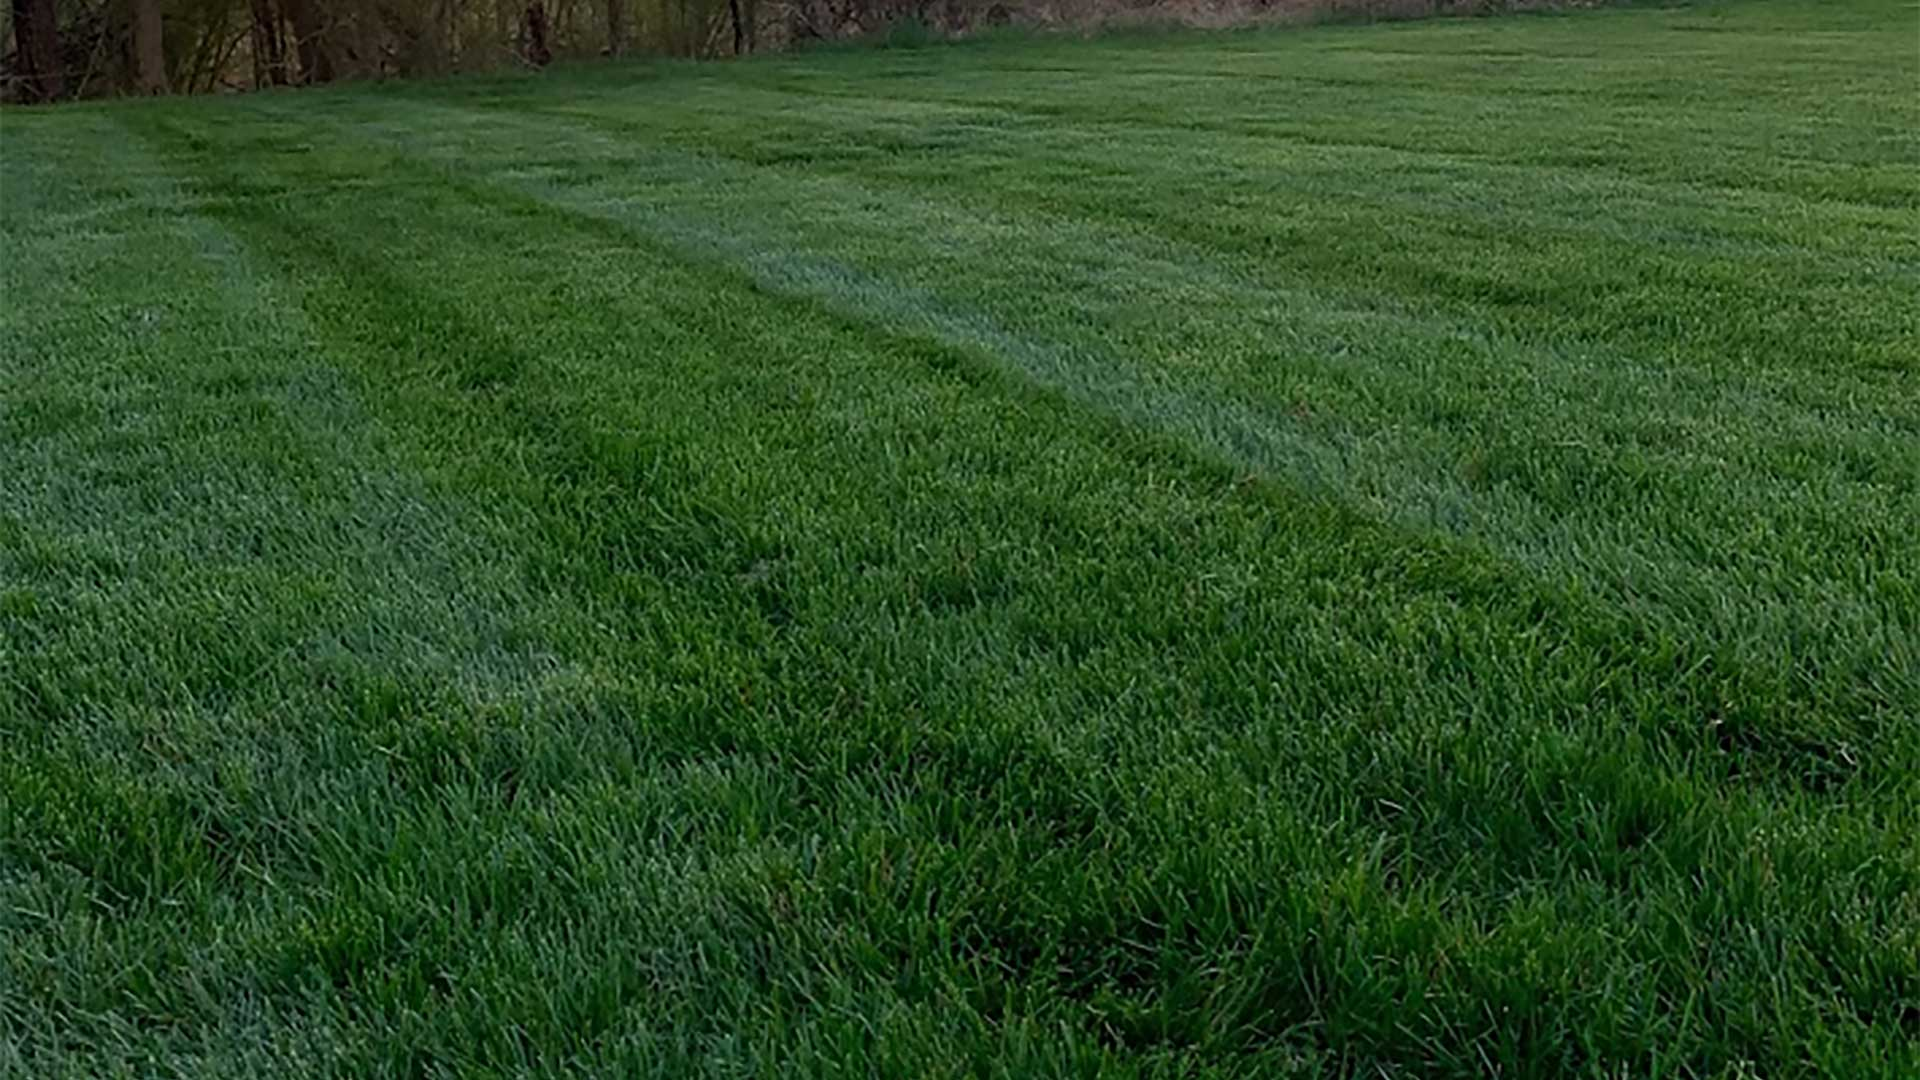 Our 9-step premium lawn care program helped this Haymarket client's lawn grow green and strong.